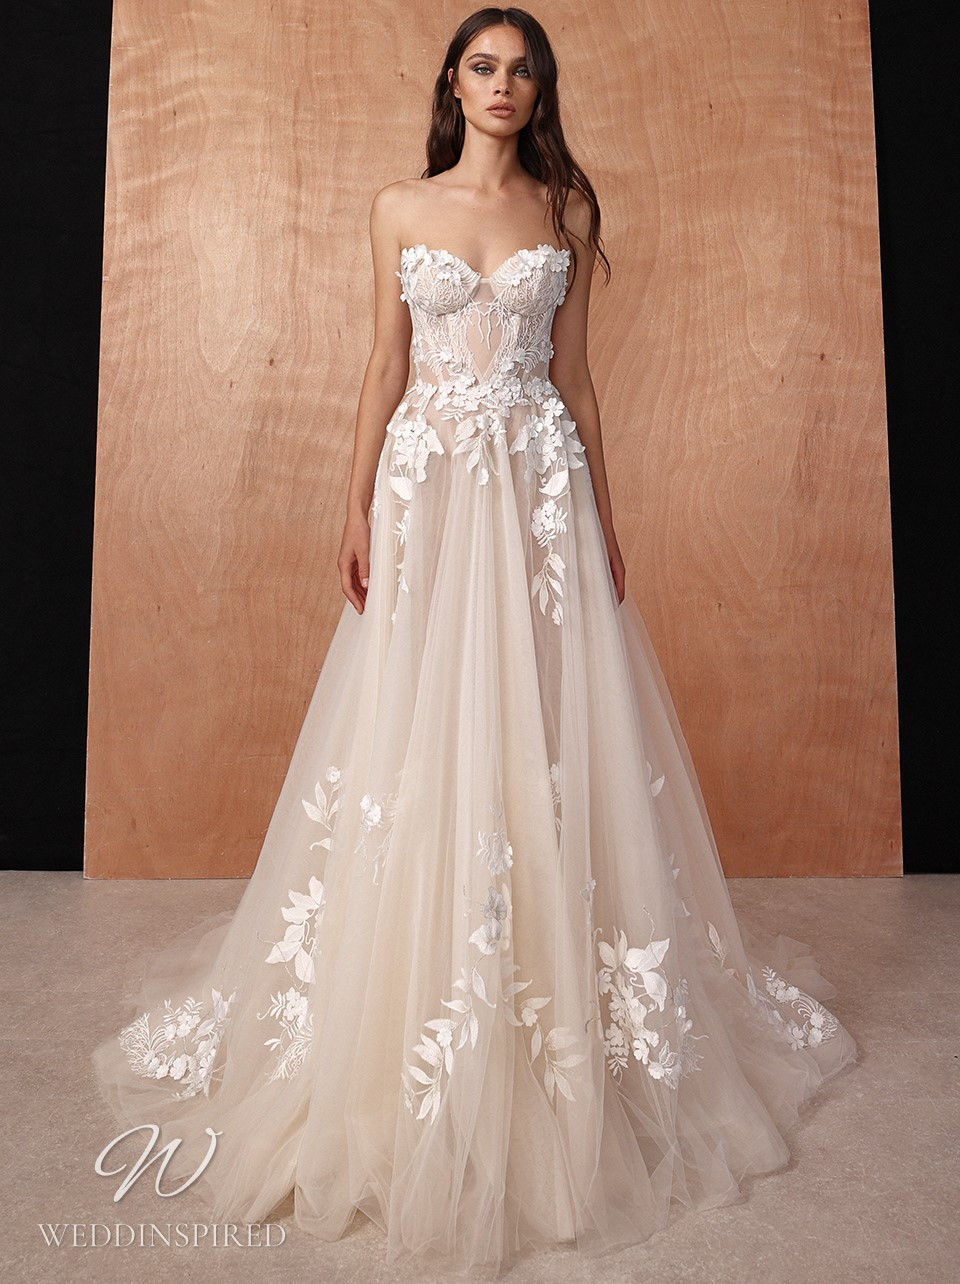 A Galia Lahav 2022 strapless lace and tulle A-line wedding dress